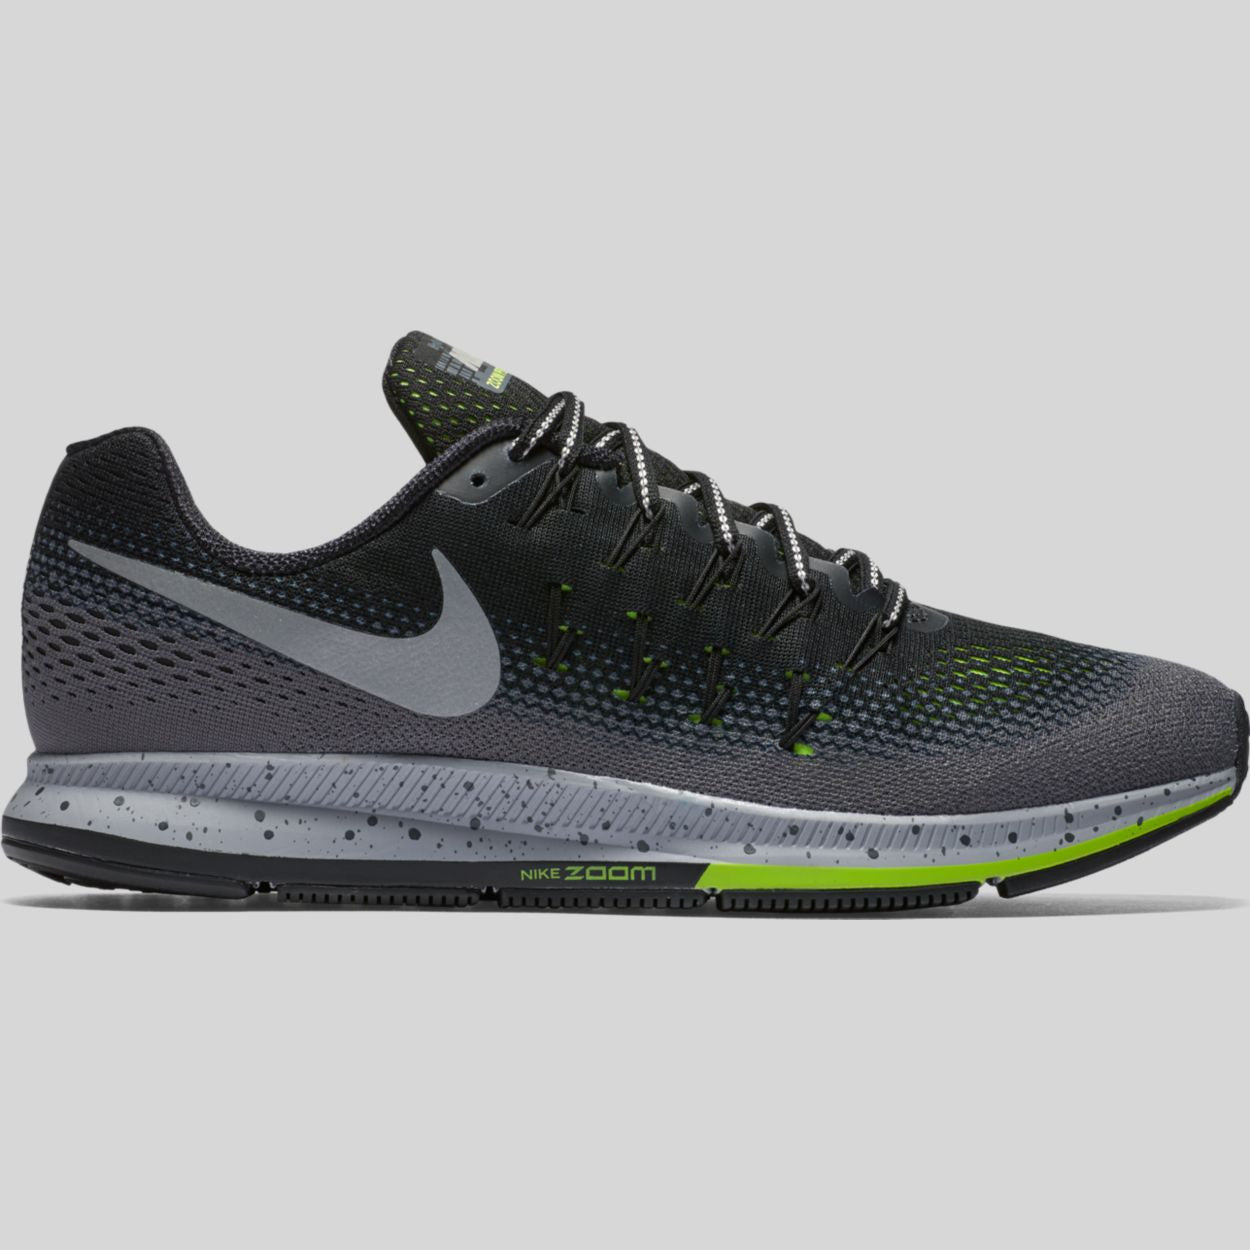 febb6befa69e5 australia nike running shoe air zoom pegasus 33 shield black metallic  silver f87d3 80a25